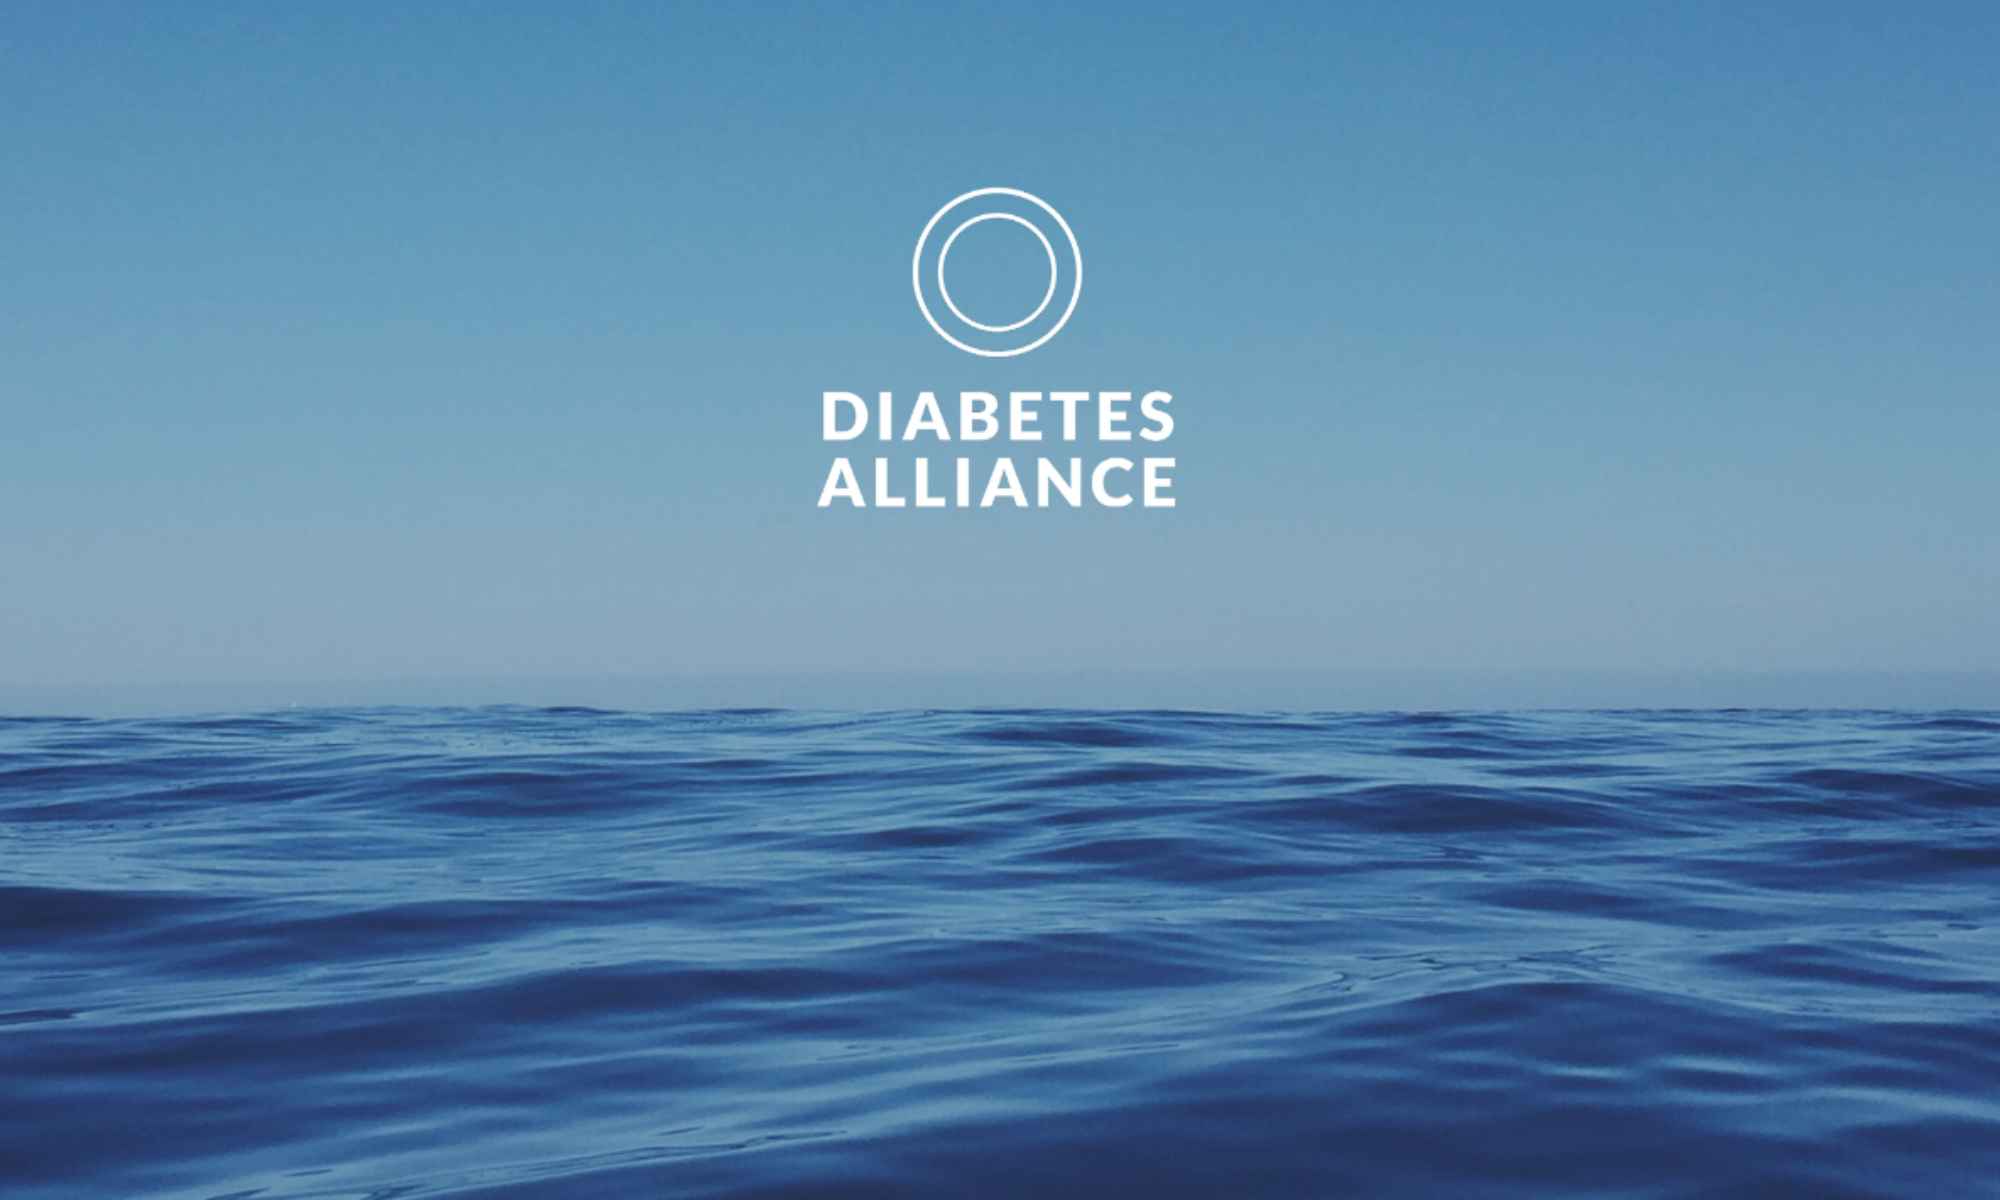 Diabetes Alliance